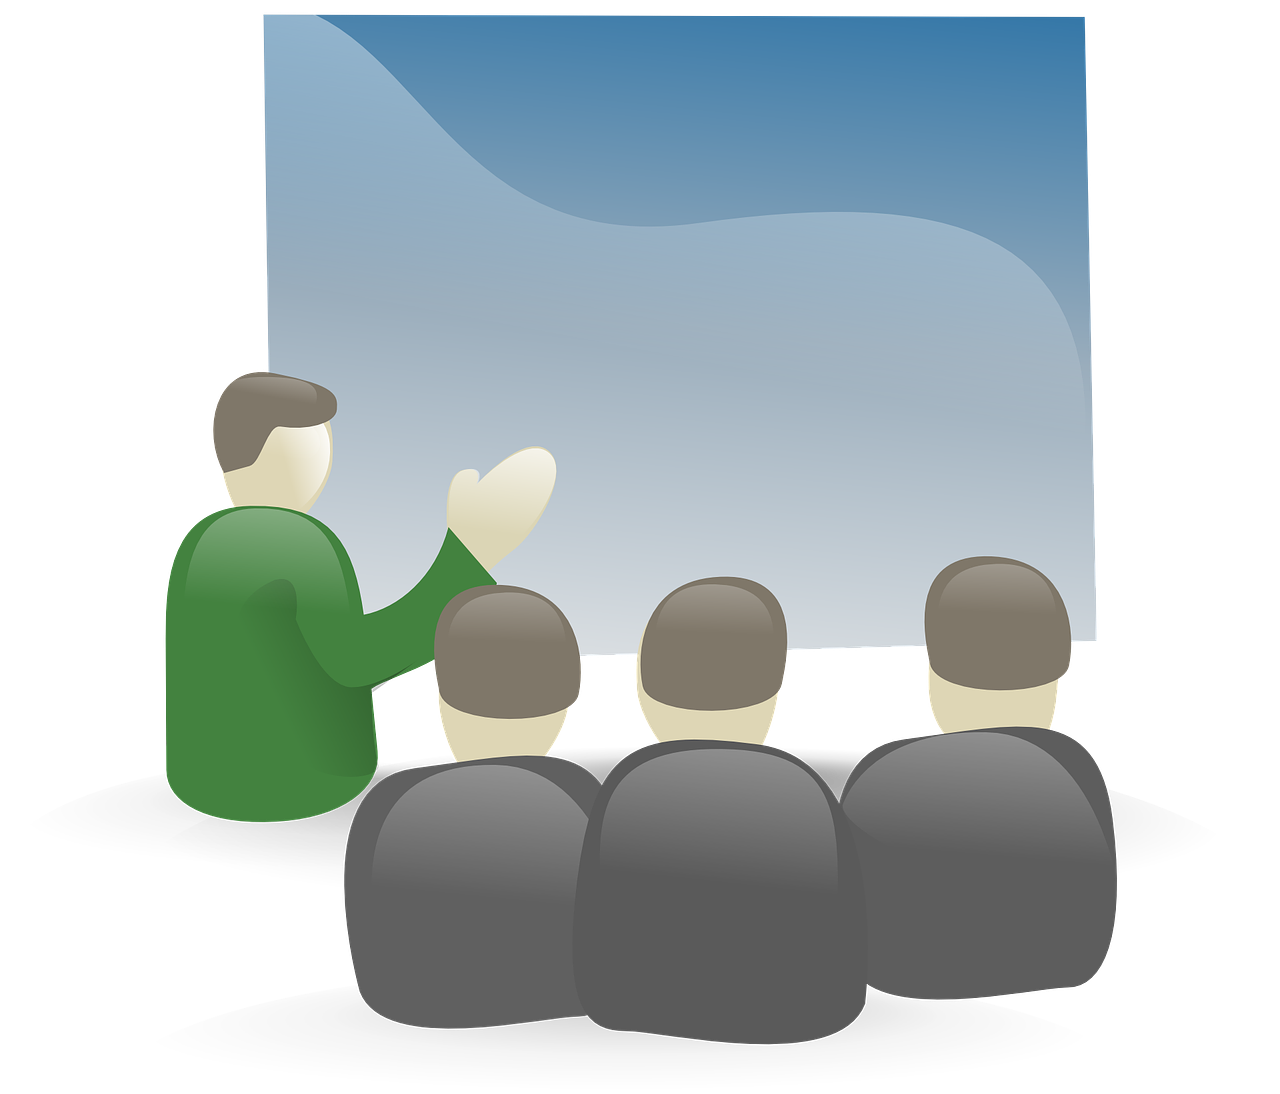 Presentation People Meeting Group  - Clker-Free-Vector-Images / Pixabay